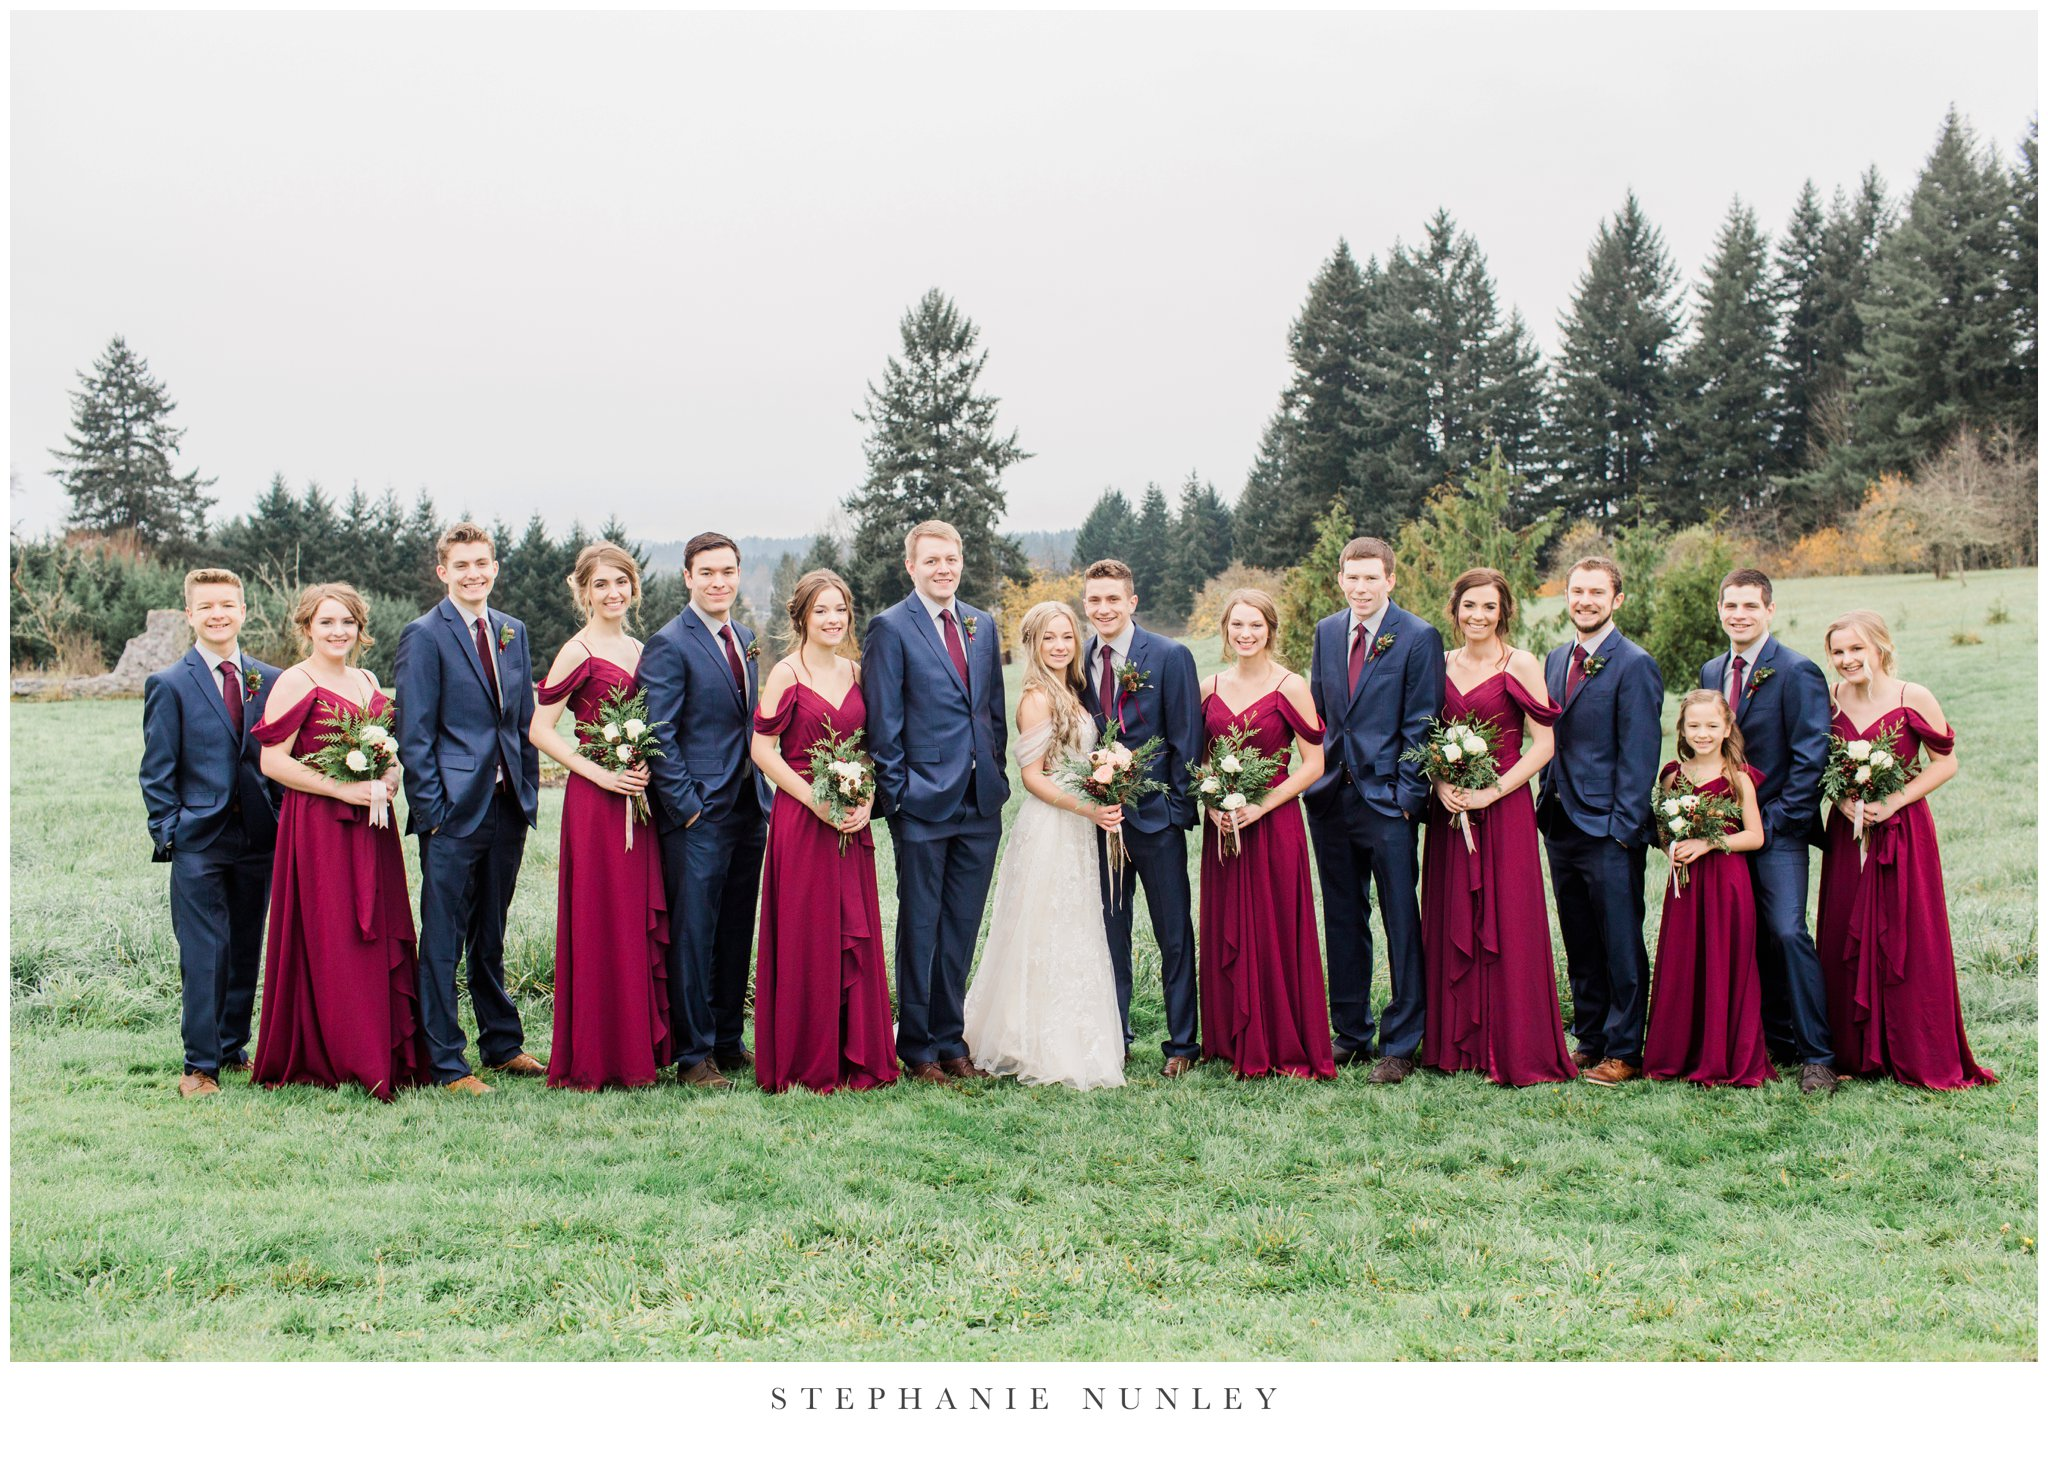 vancouver-washington-church-wedding-photos-59.jpg